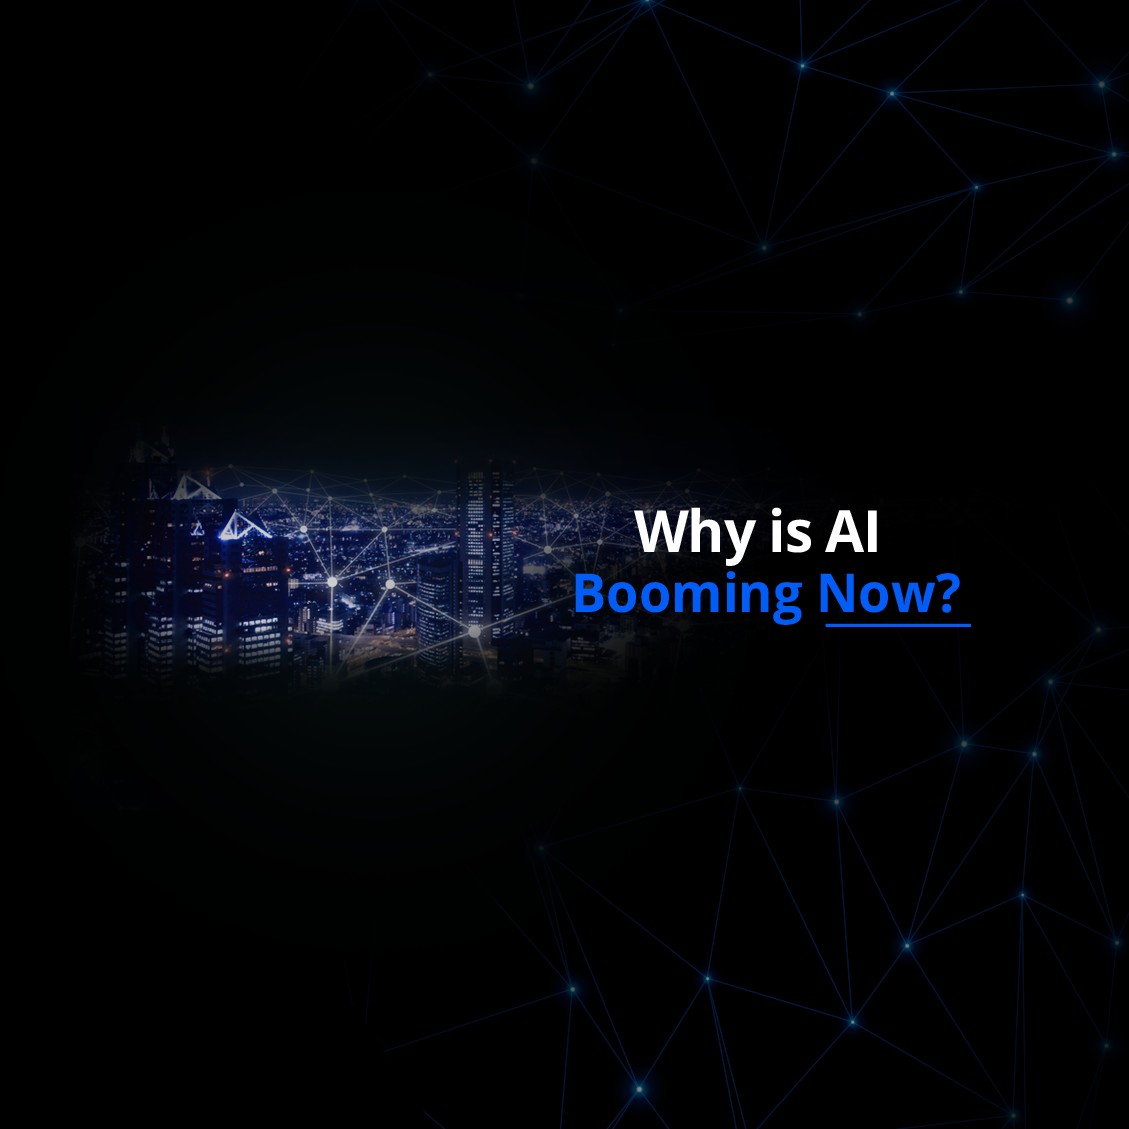 Why is AI Booming Now?